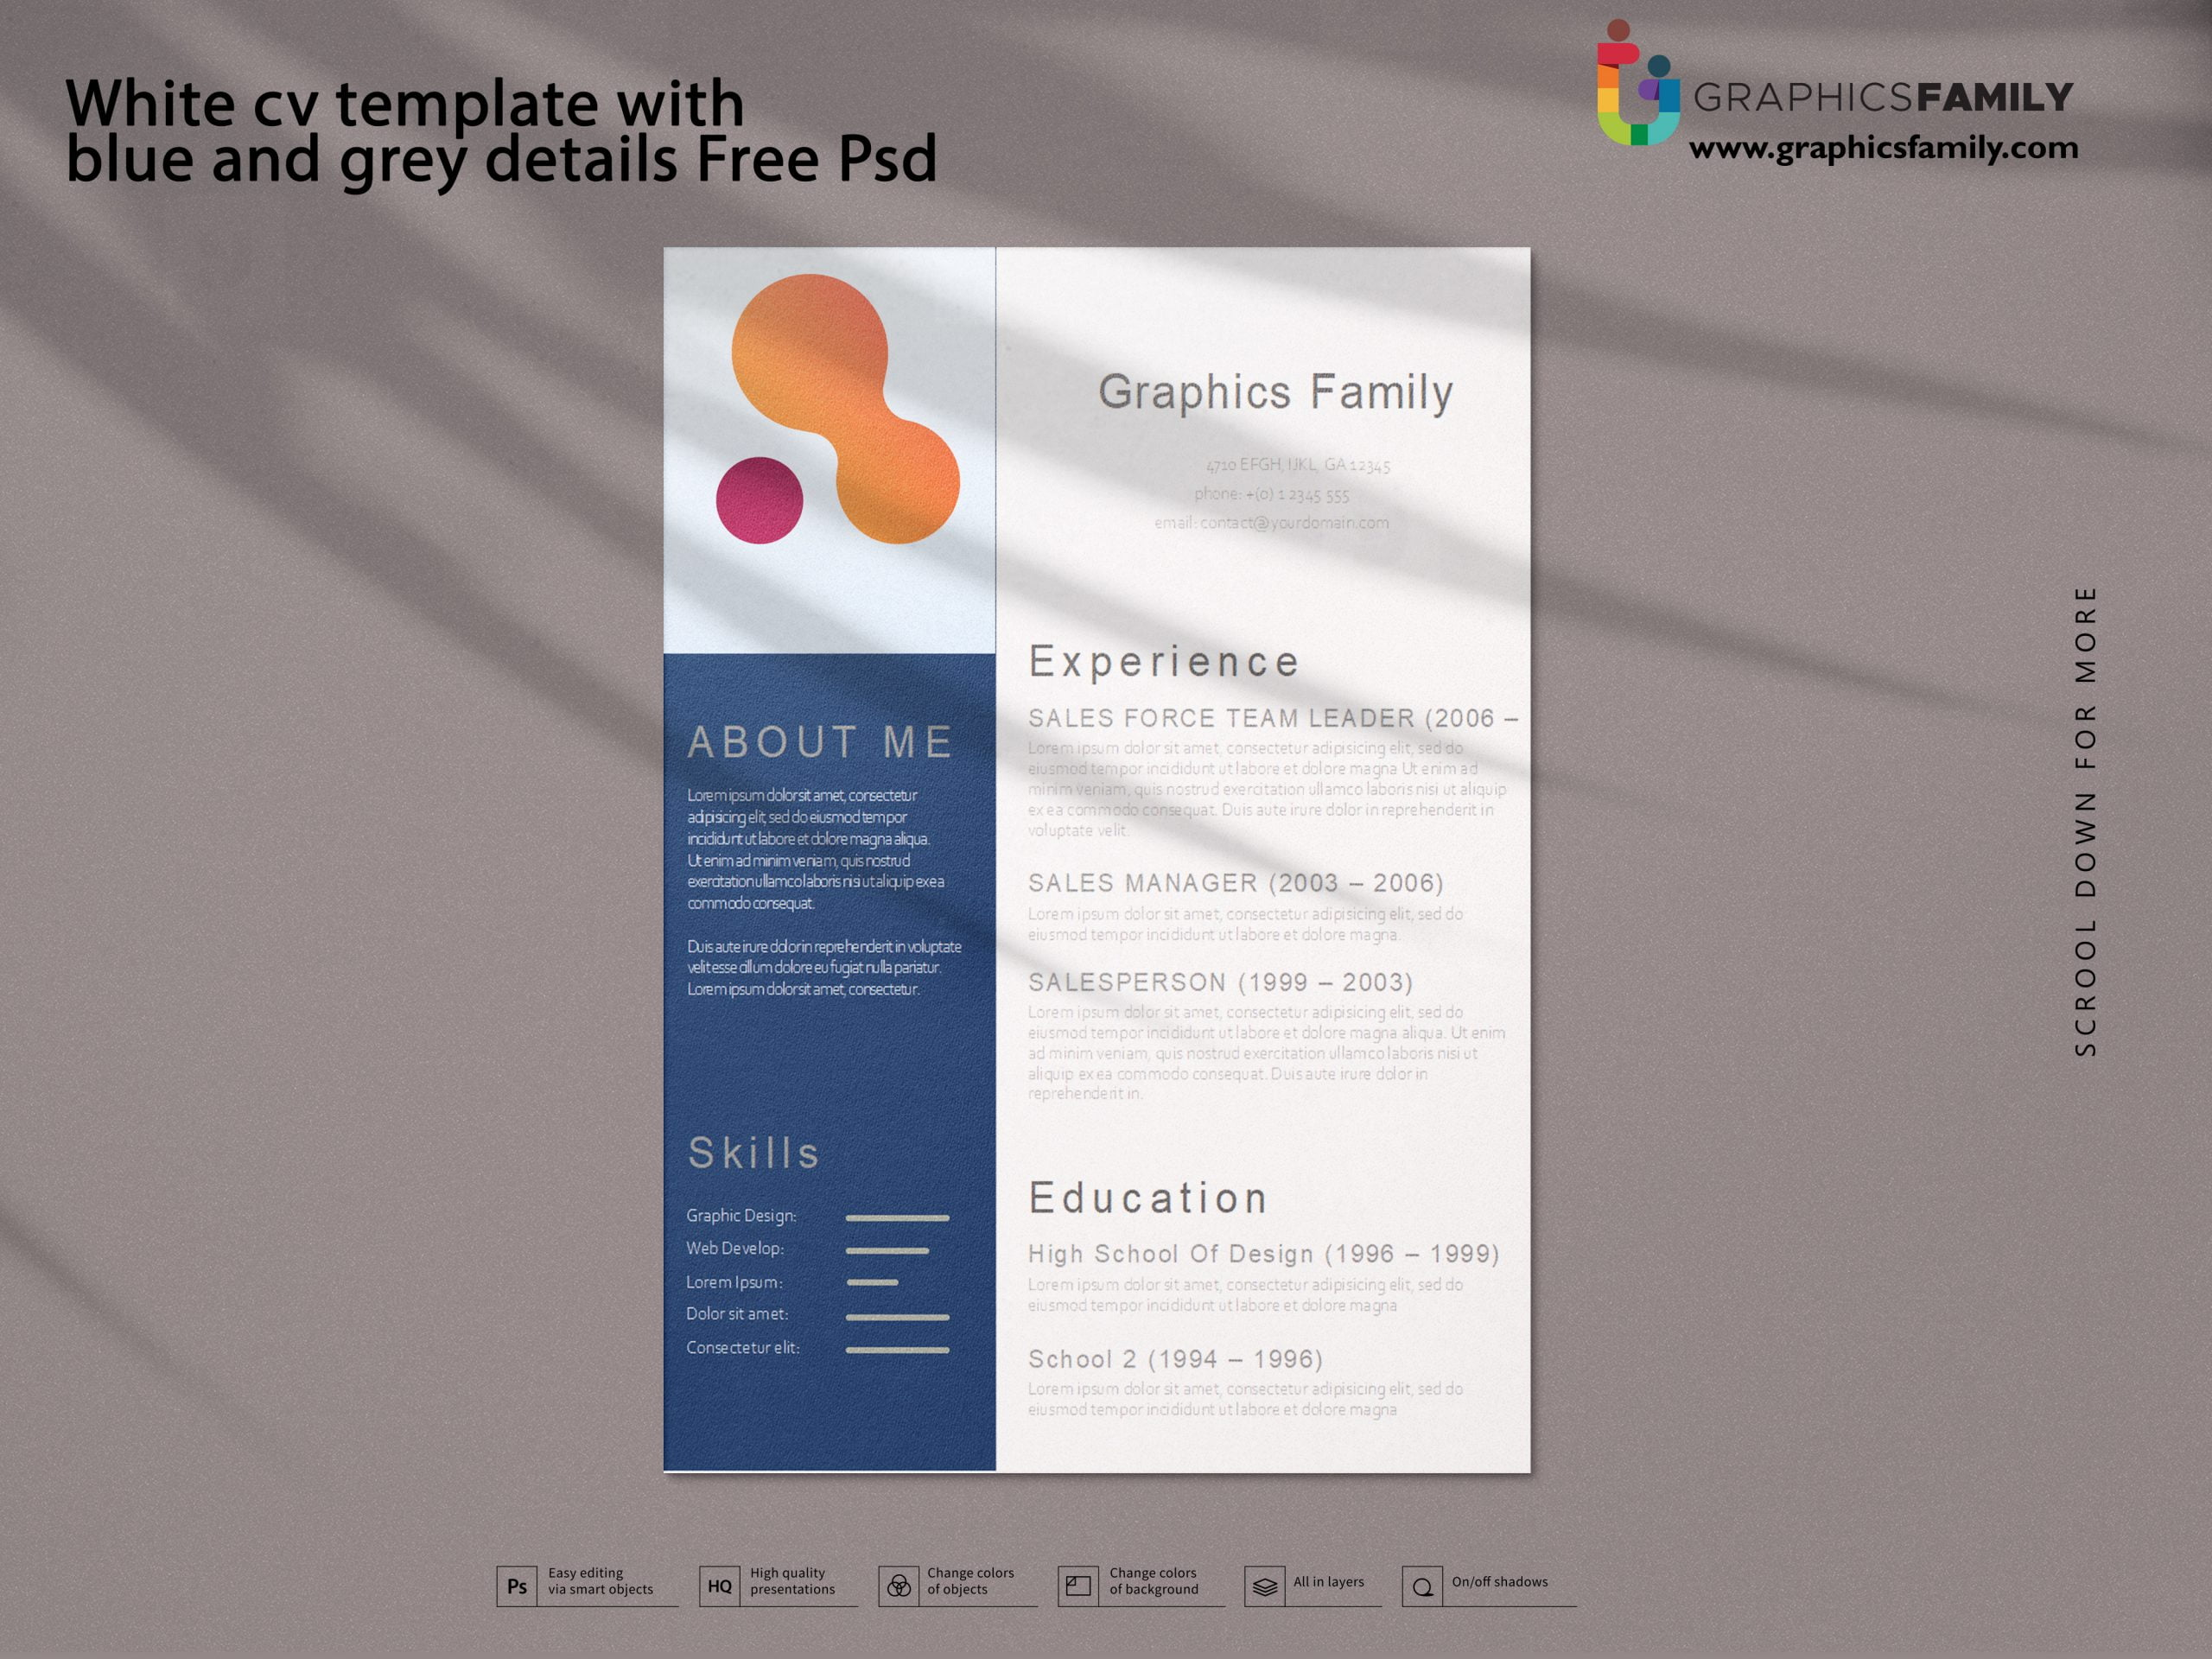 White cv template with blue and grey details Free Psd Download